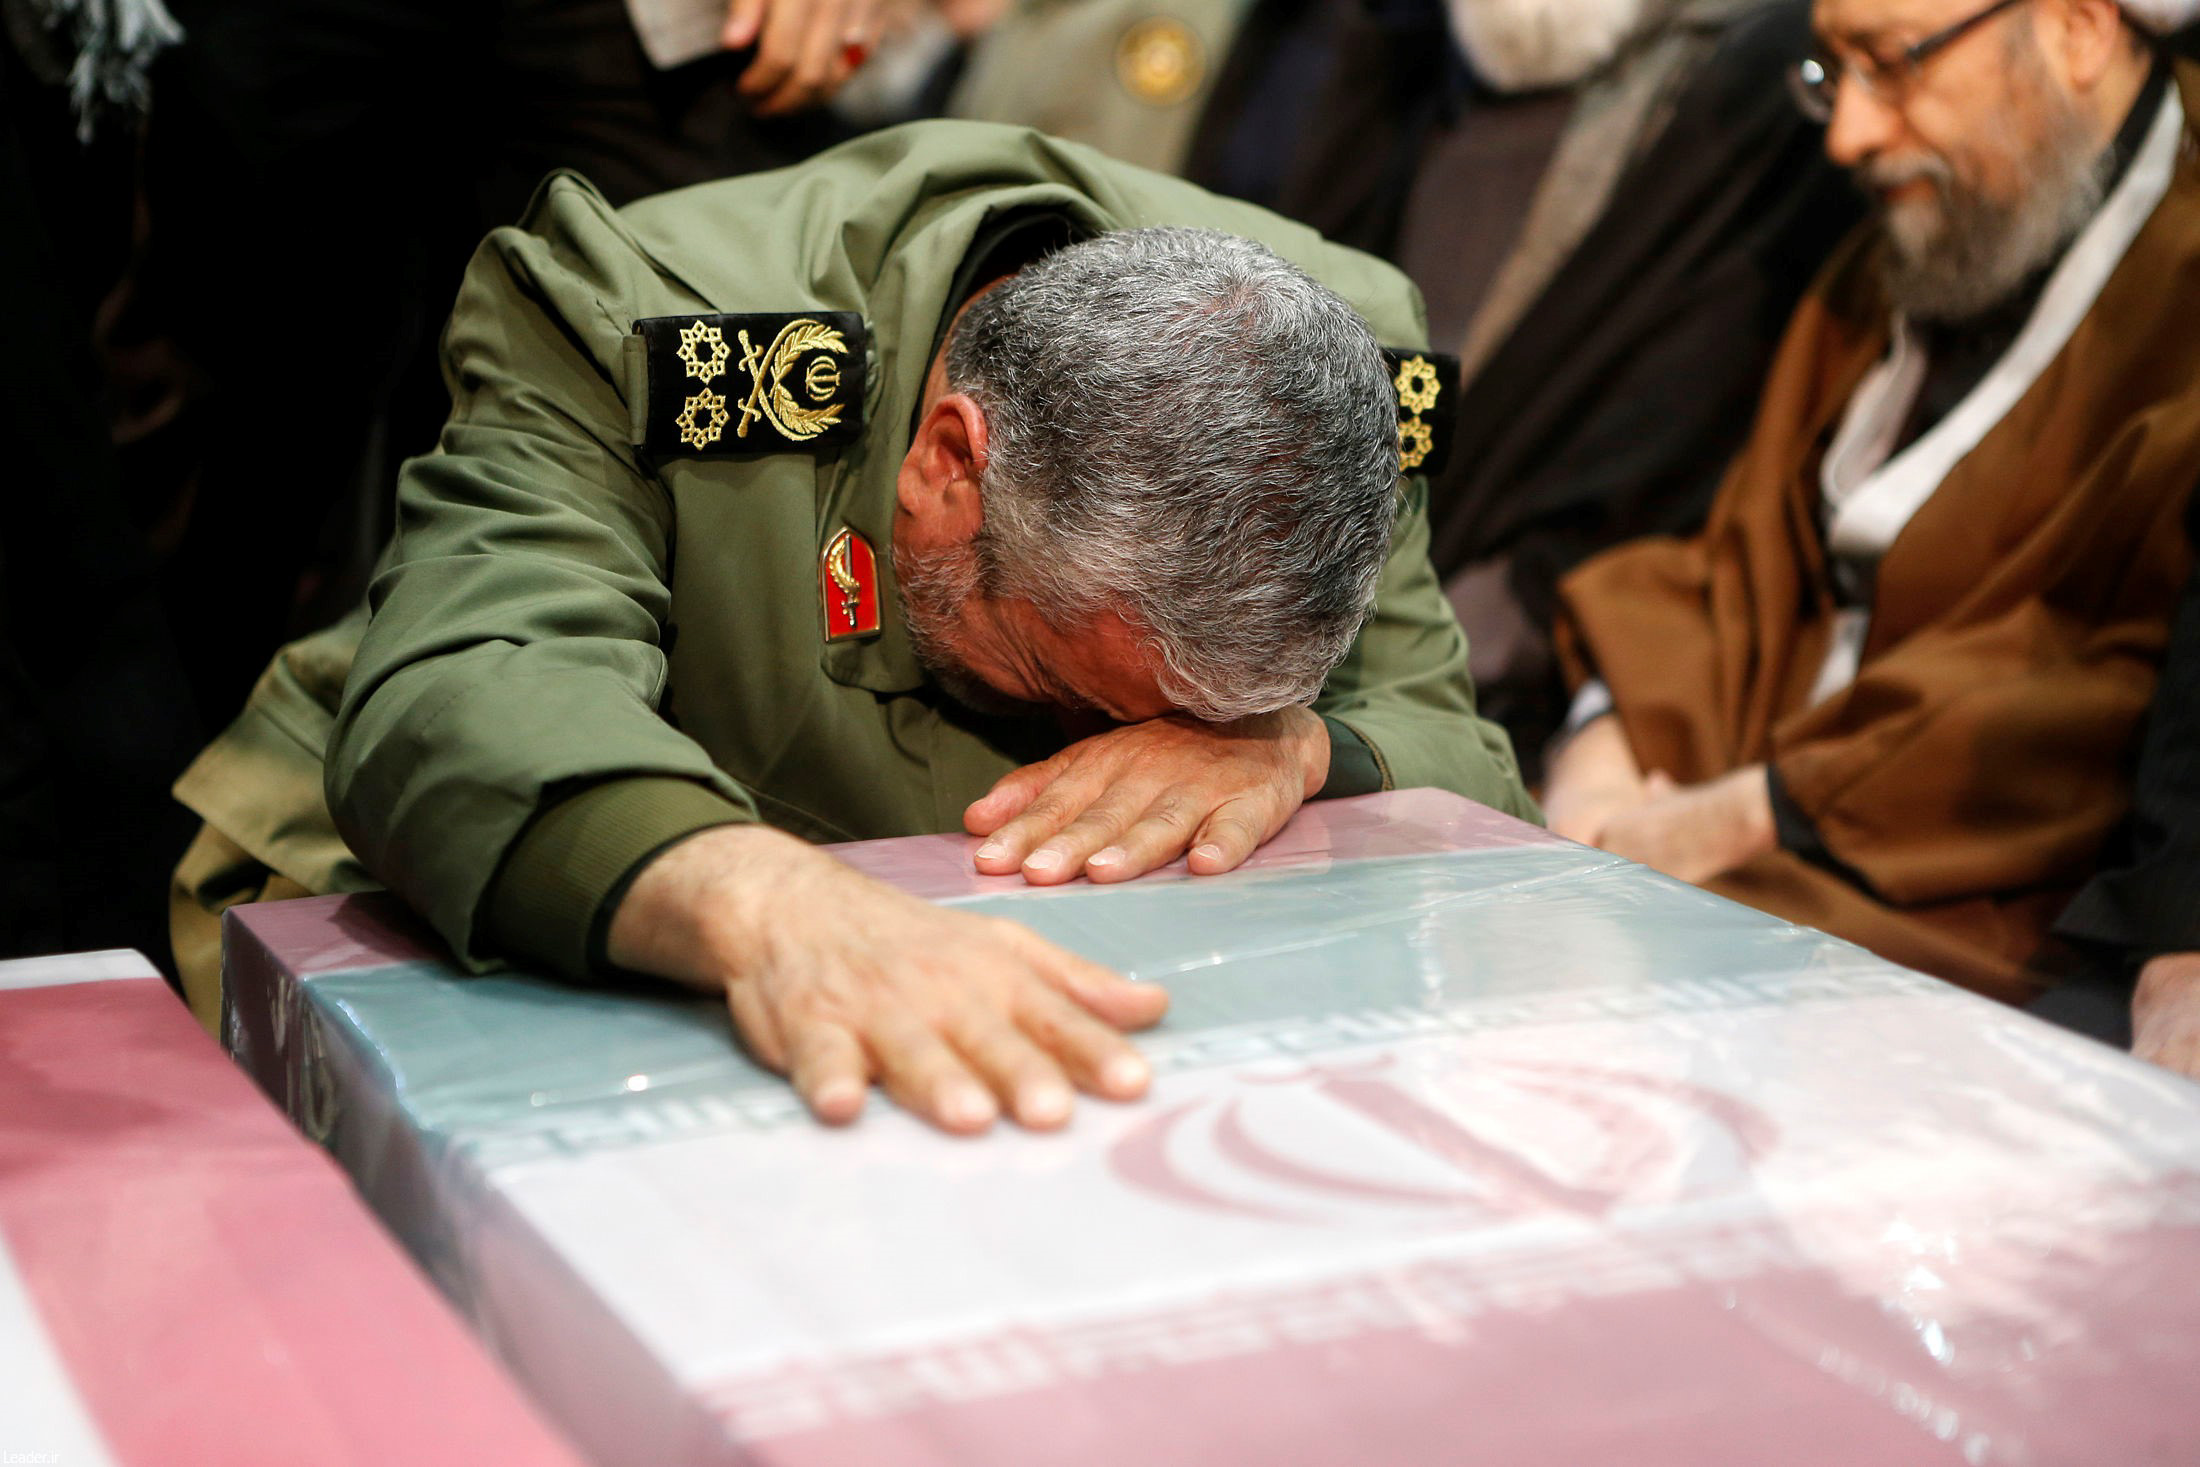 General Ismail Qaani -- Soleimani's long-time lieutenant and his successor as the leader of Iran's Islamic Revolutionary Guards' Quds Force -- cries over Soleimani's coffin during the funeral ceremony on Monday.